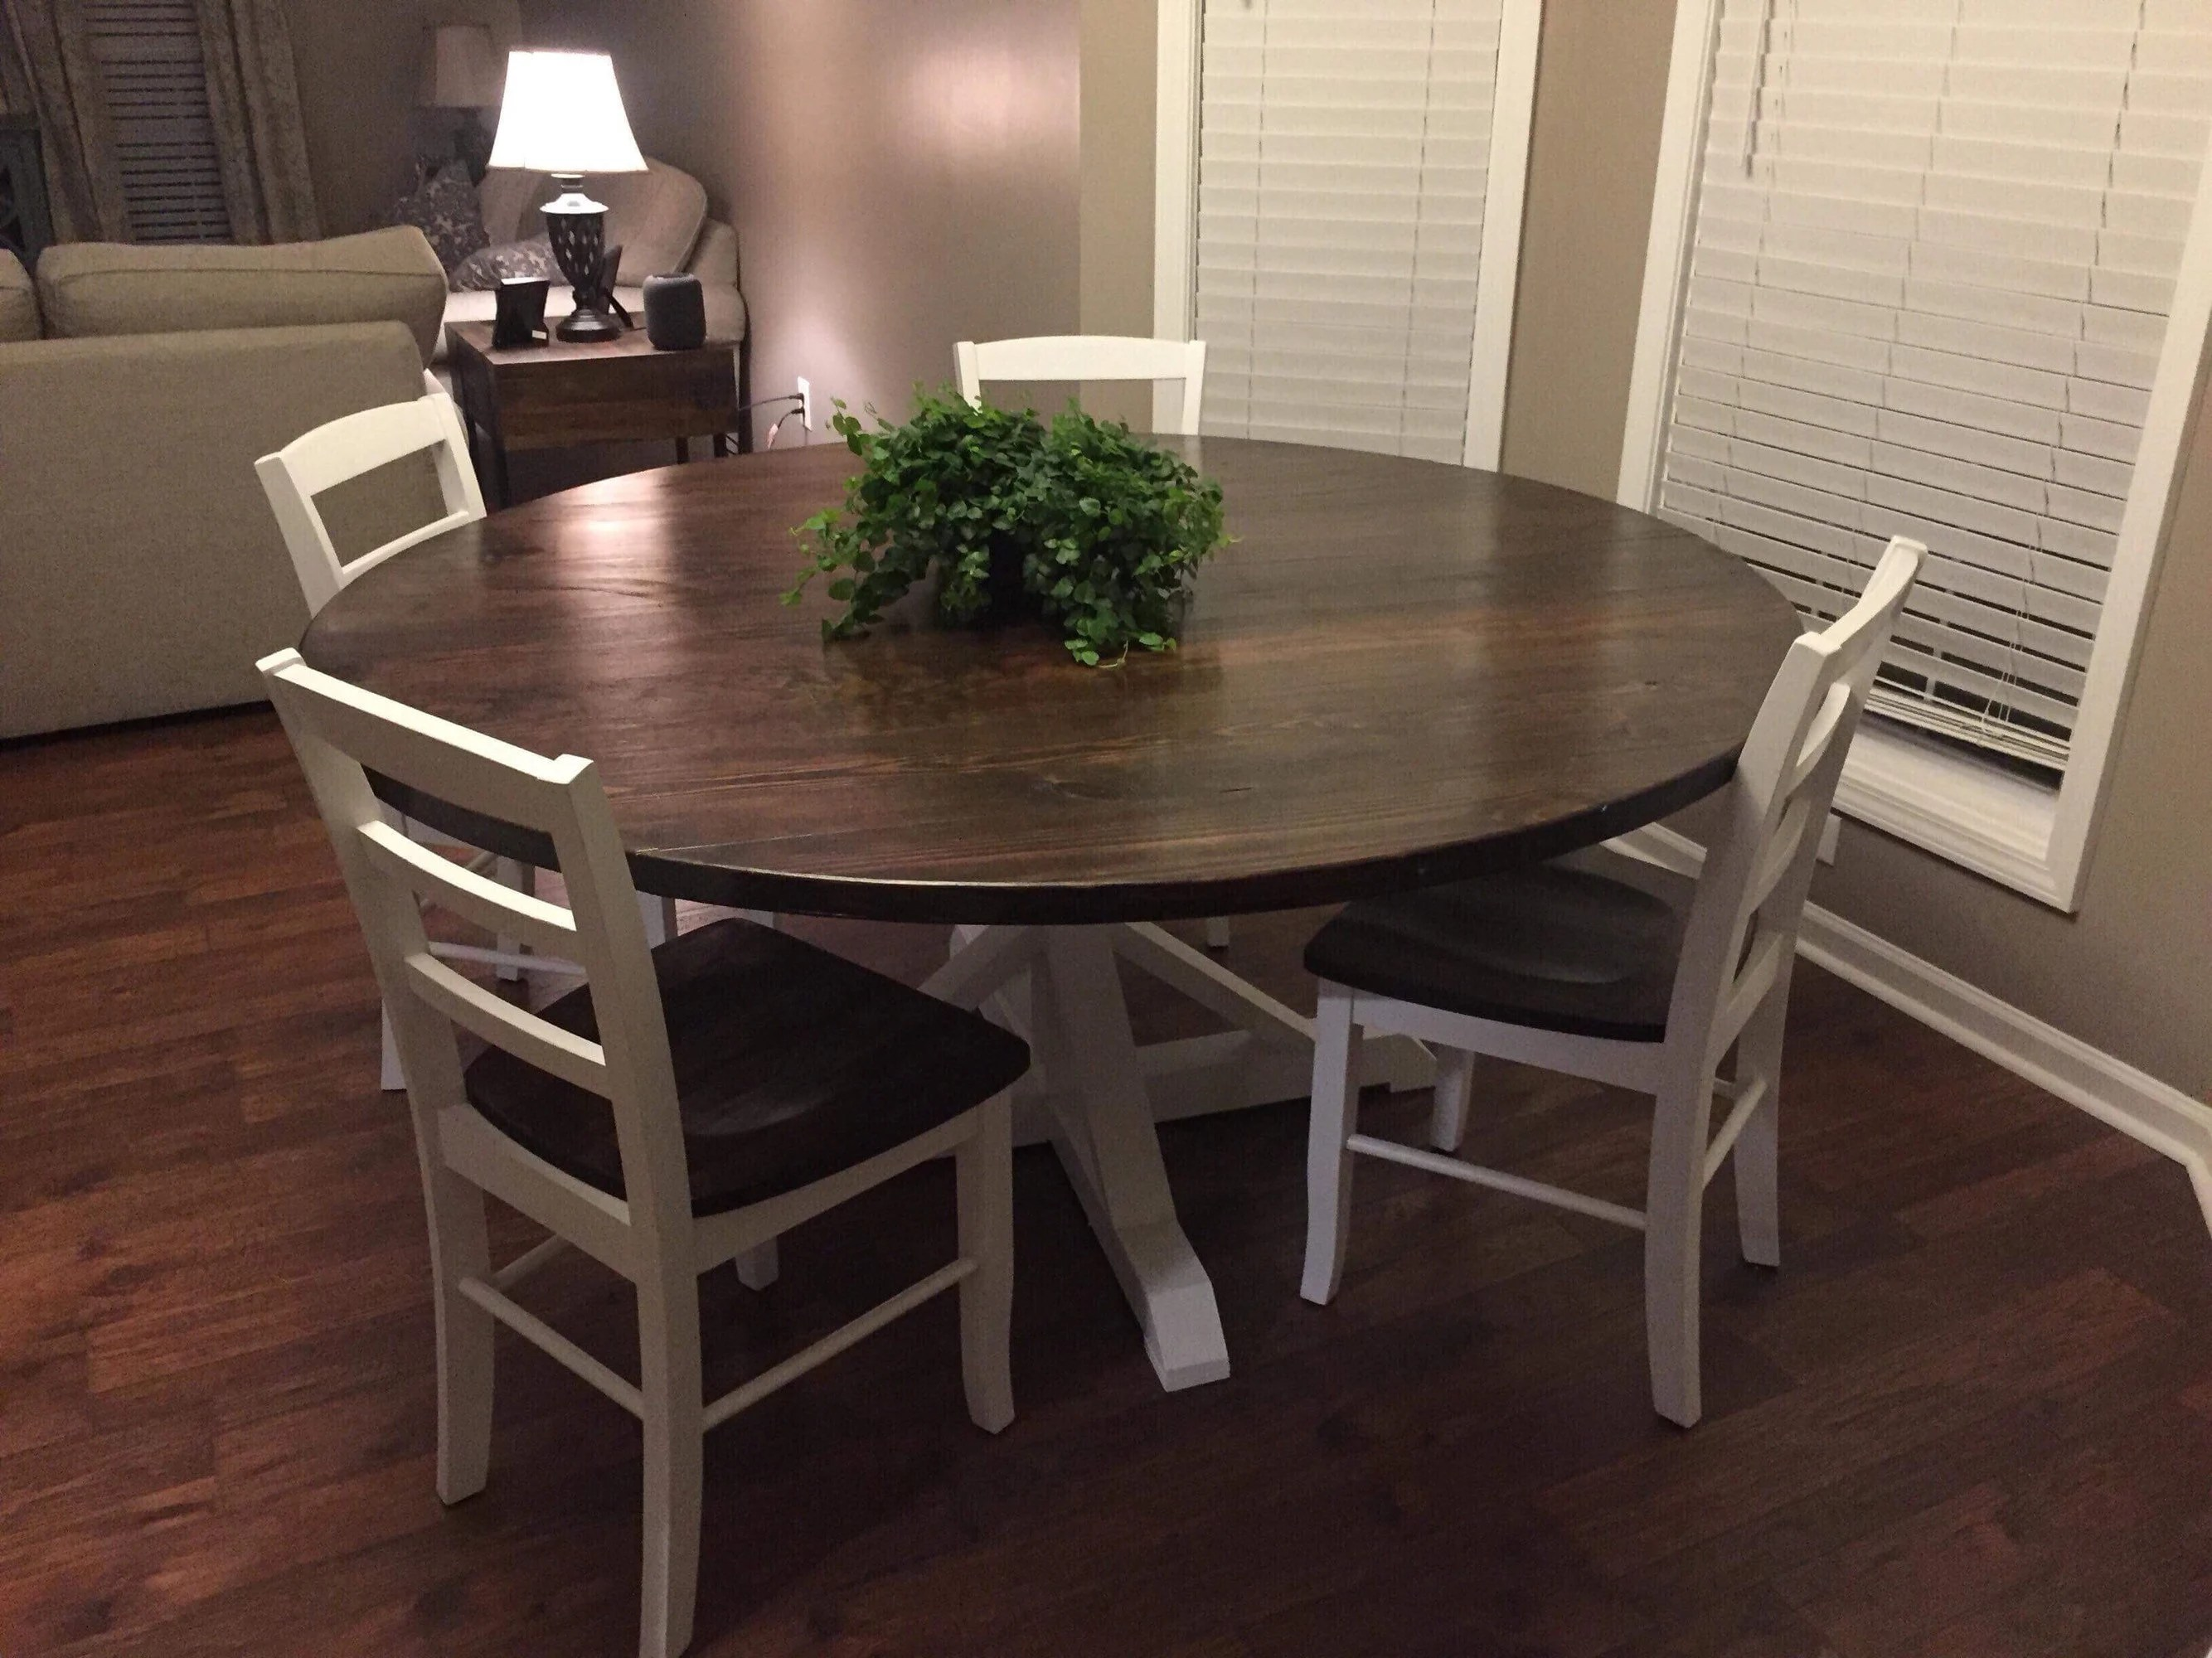 kitchen table round walmart stools farmhouse etsy dining with trestle style pedestal free delivery in va or nc but ship nation wide